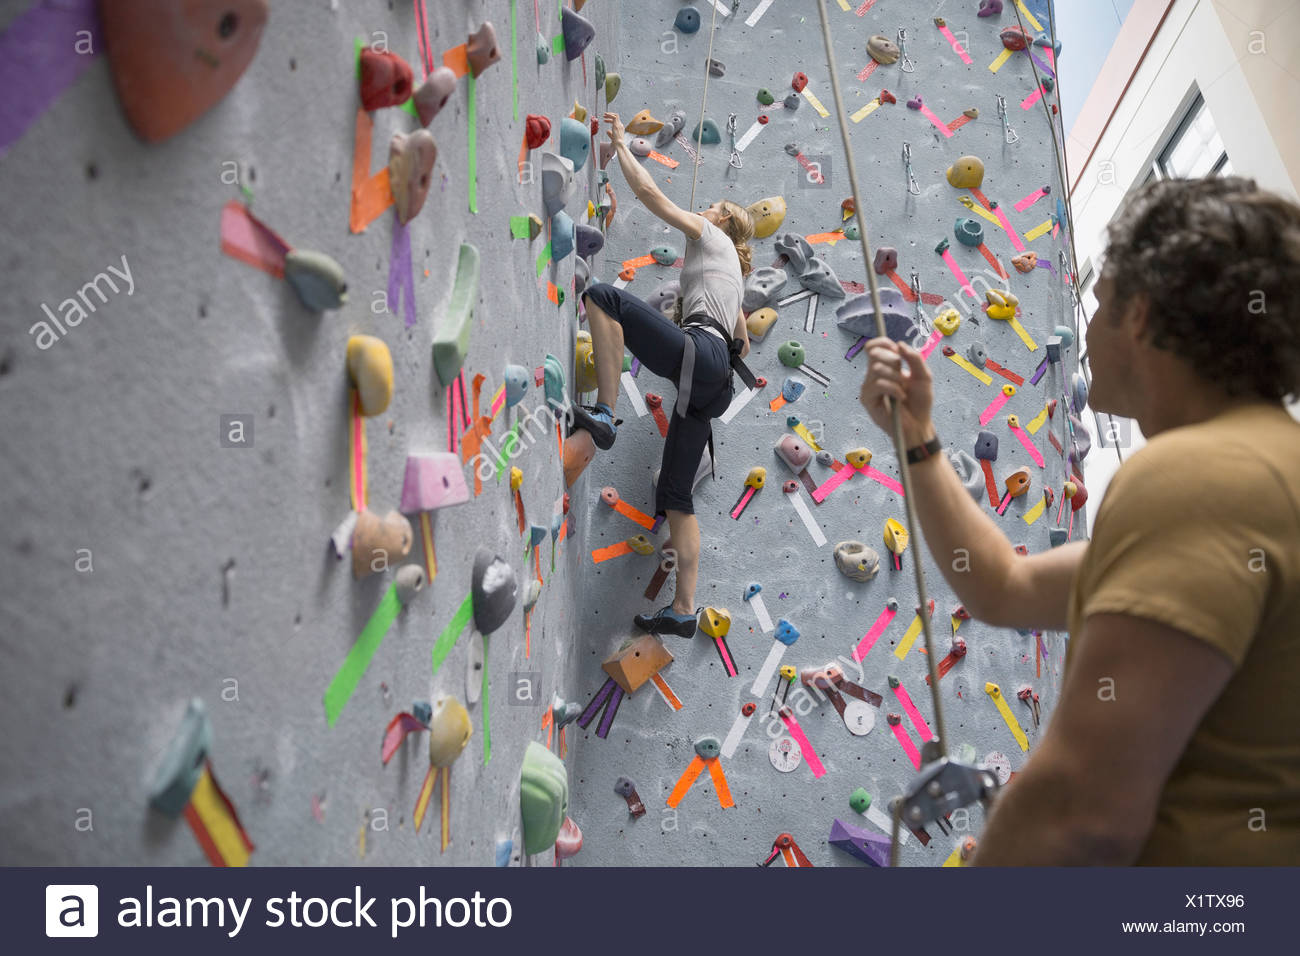 Man watching woman climb indoor rock wall - Stock Image